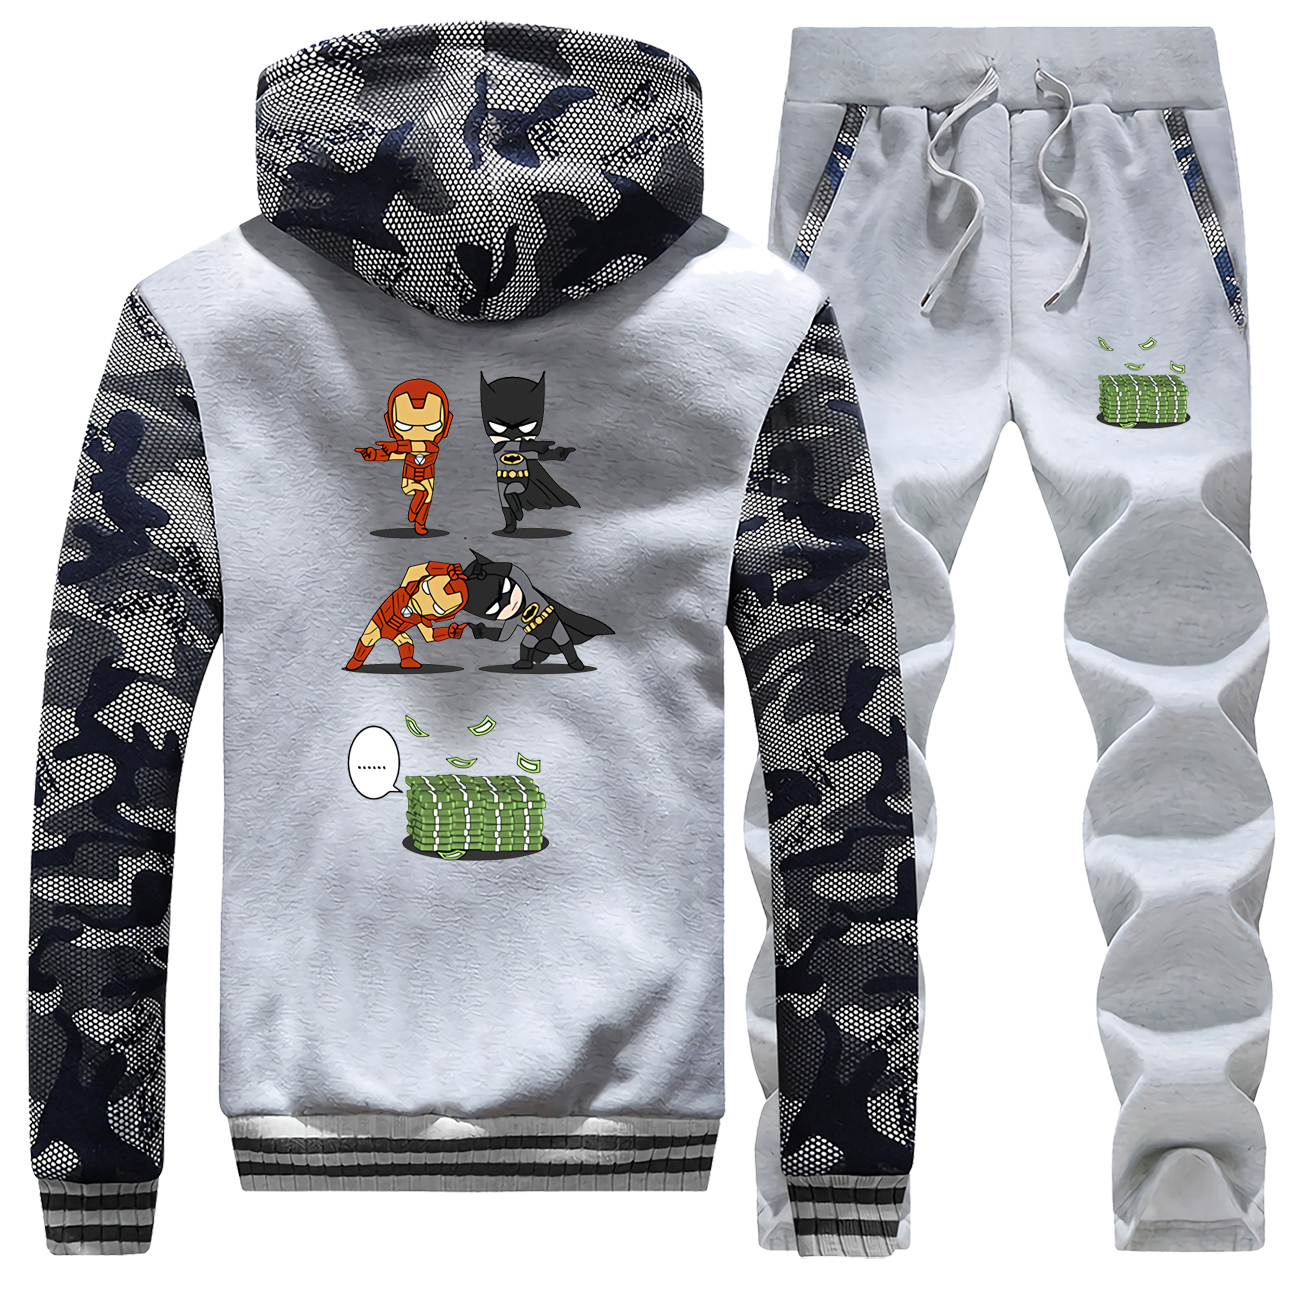 2019 New Style Jacket+pants 2Pcs Long Sleeve Fleece Casual Sports Suit Coats Cartoon Hip Hop Men Winter Hoodies Sweatpants Suit